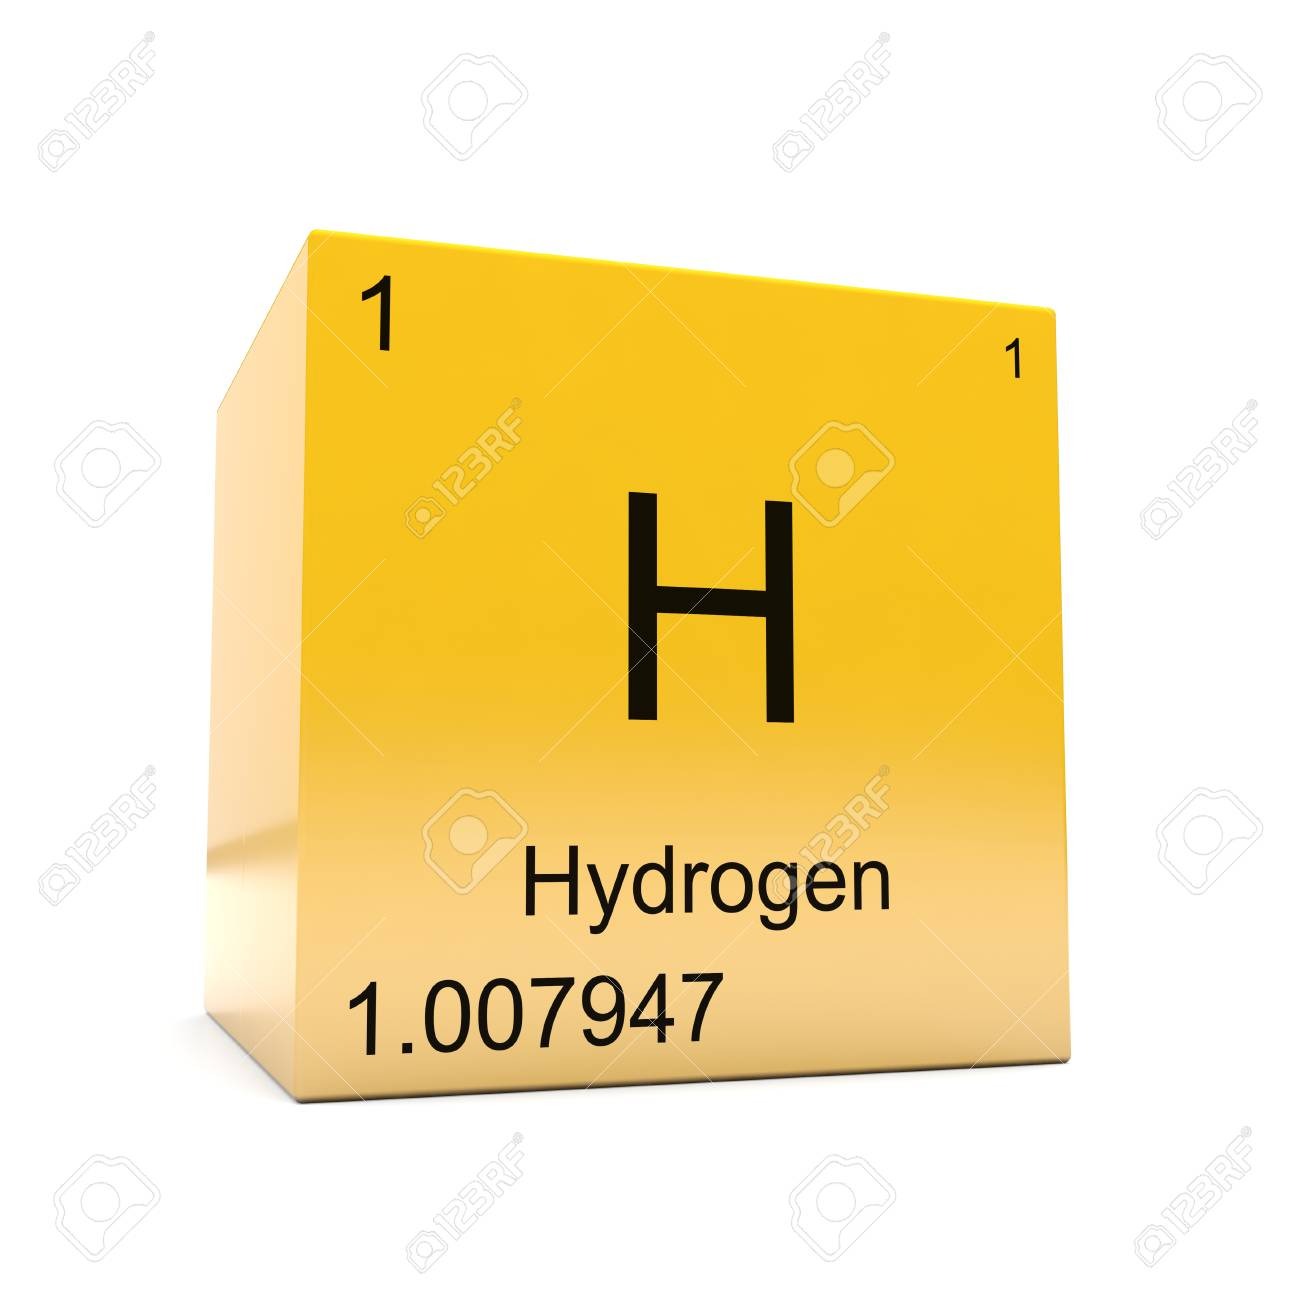 Hydrogen chemical element symbol from the periodic table displayed hydrogen chemical element symbol from the periodic table displayed on glossy yellow cube stock photo urtaz Choice Image